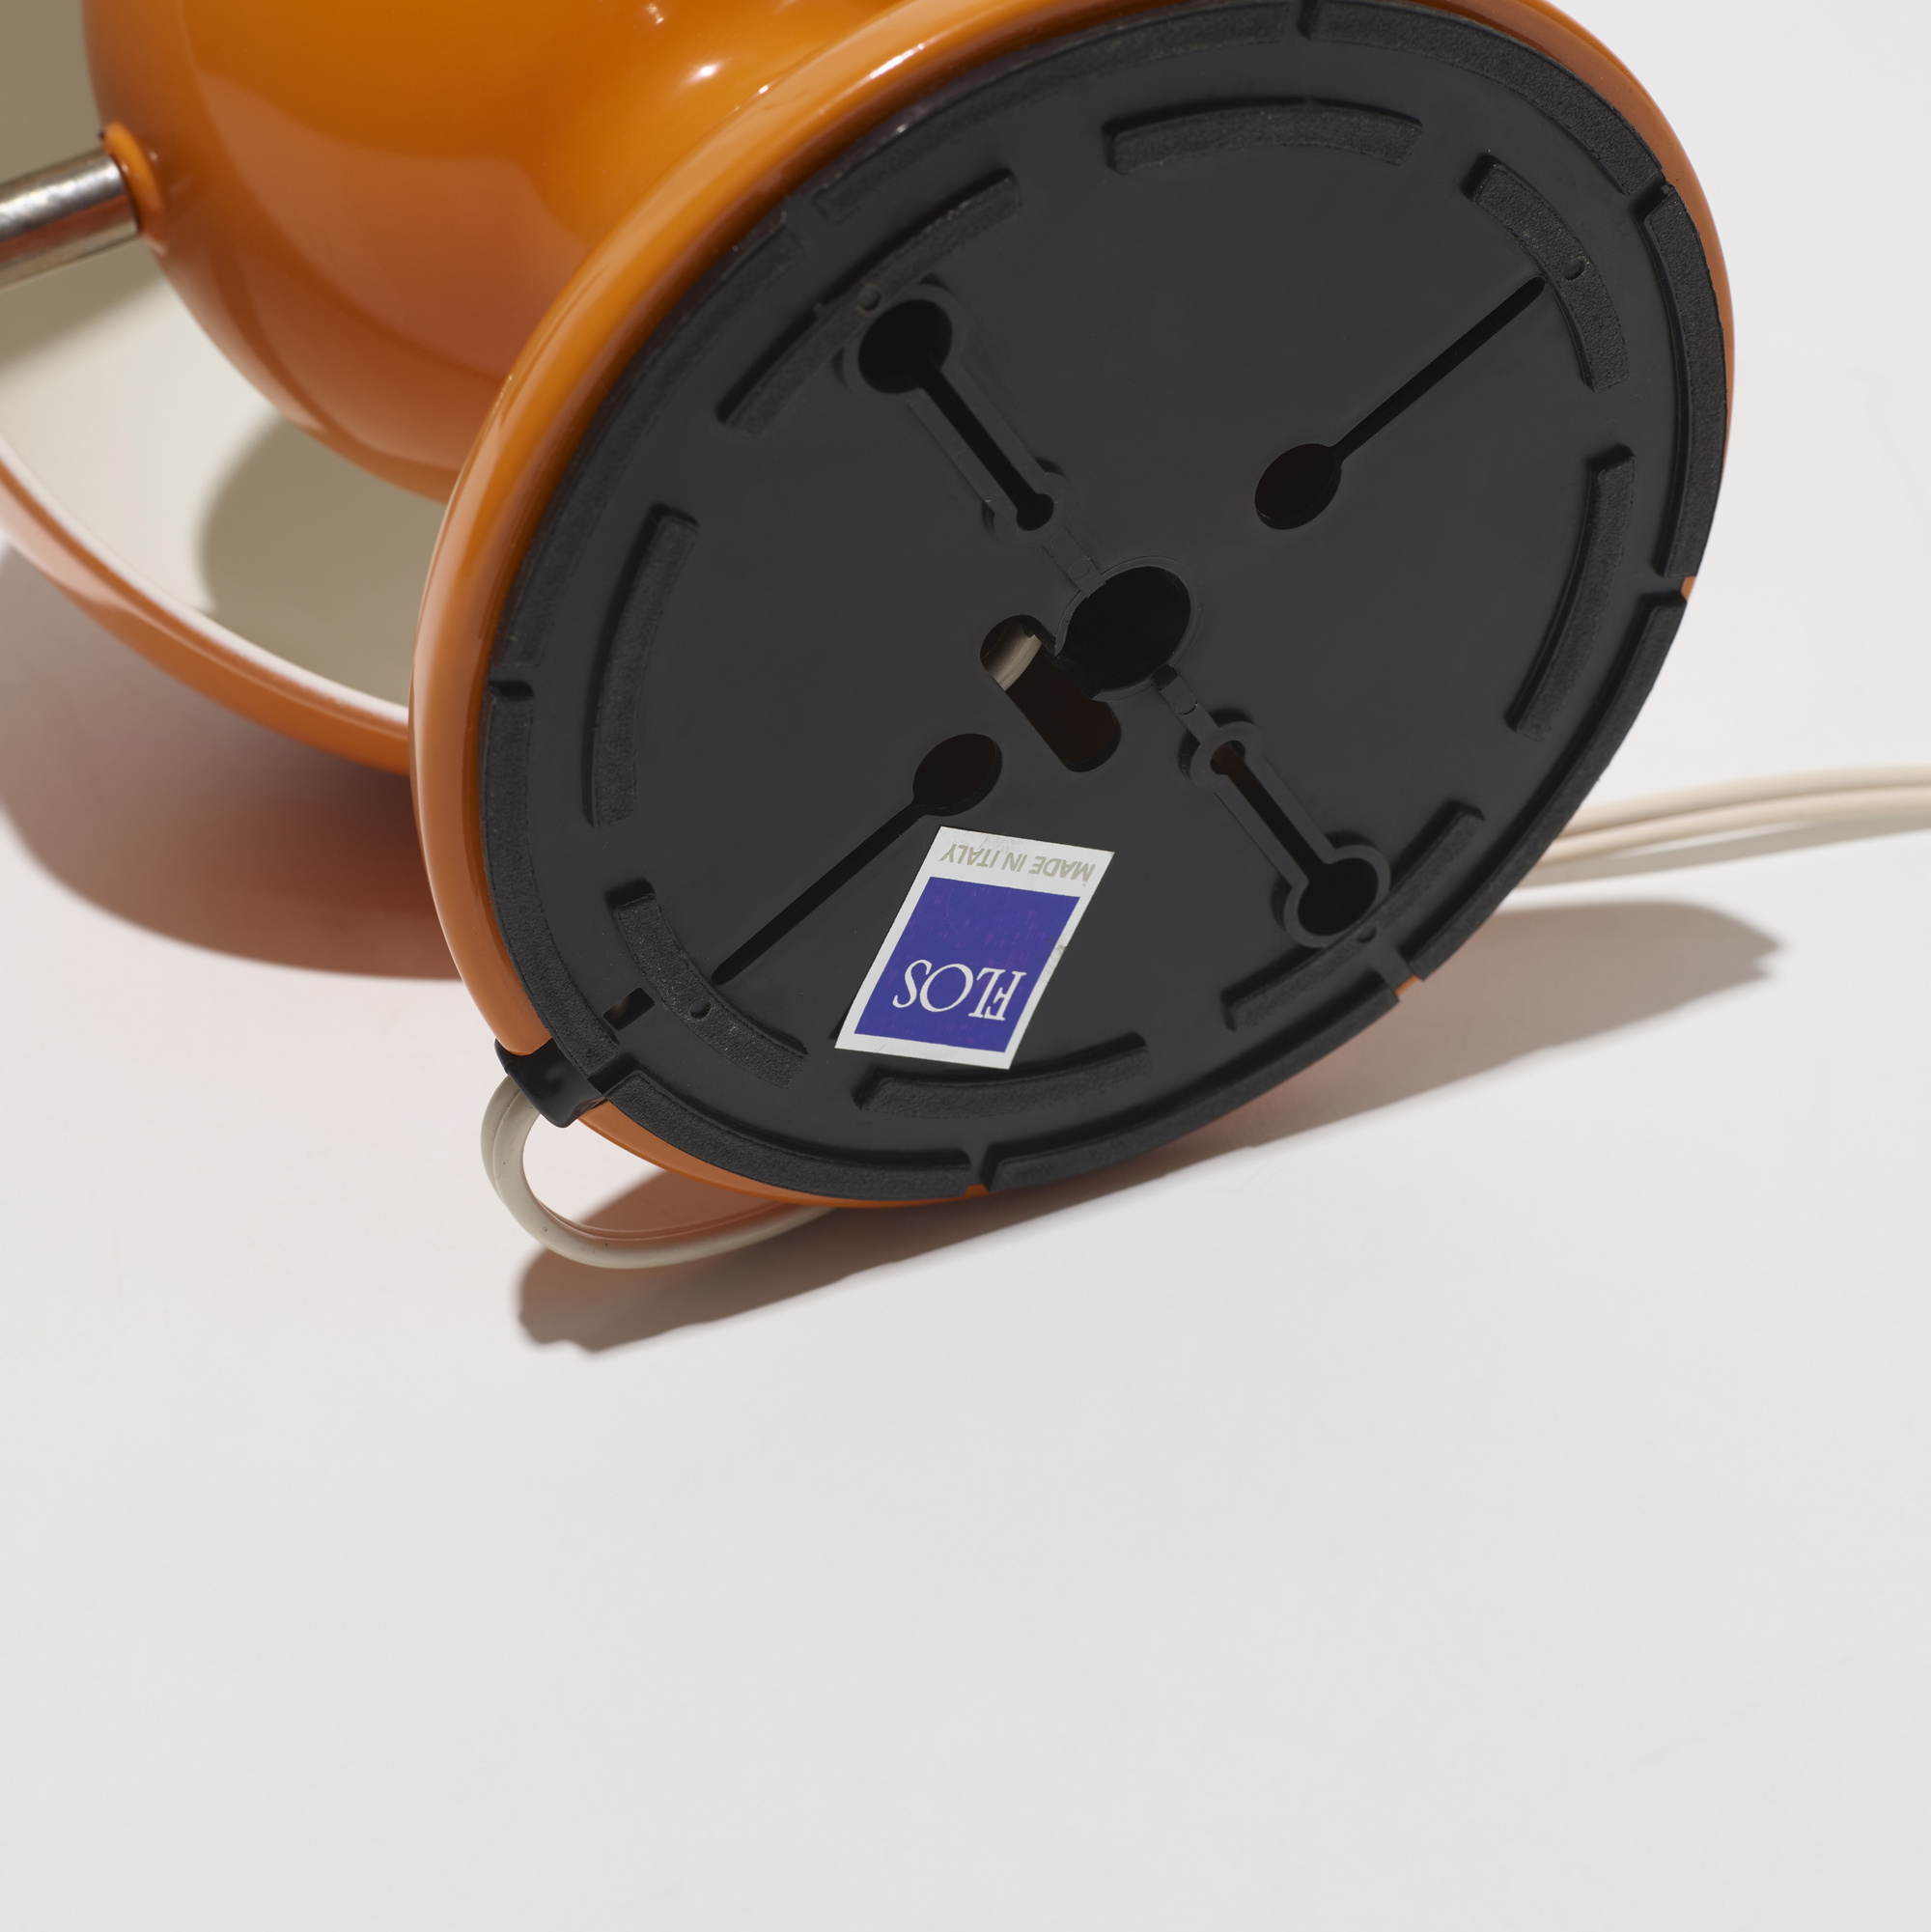 326: Afra and Tobia Scarpa / Jucker table lamp (3 of 3)